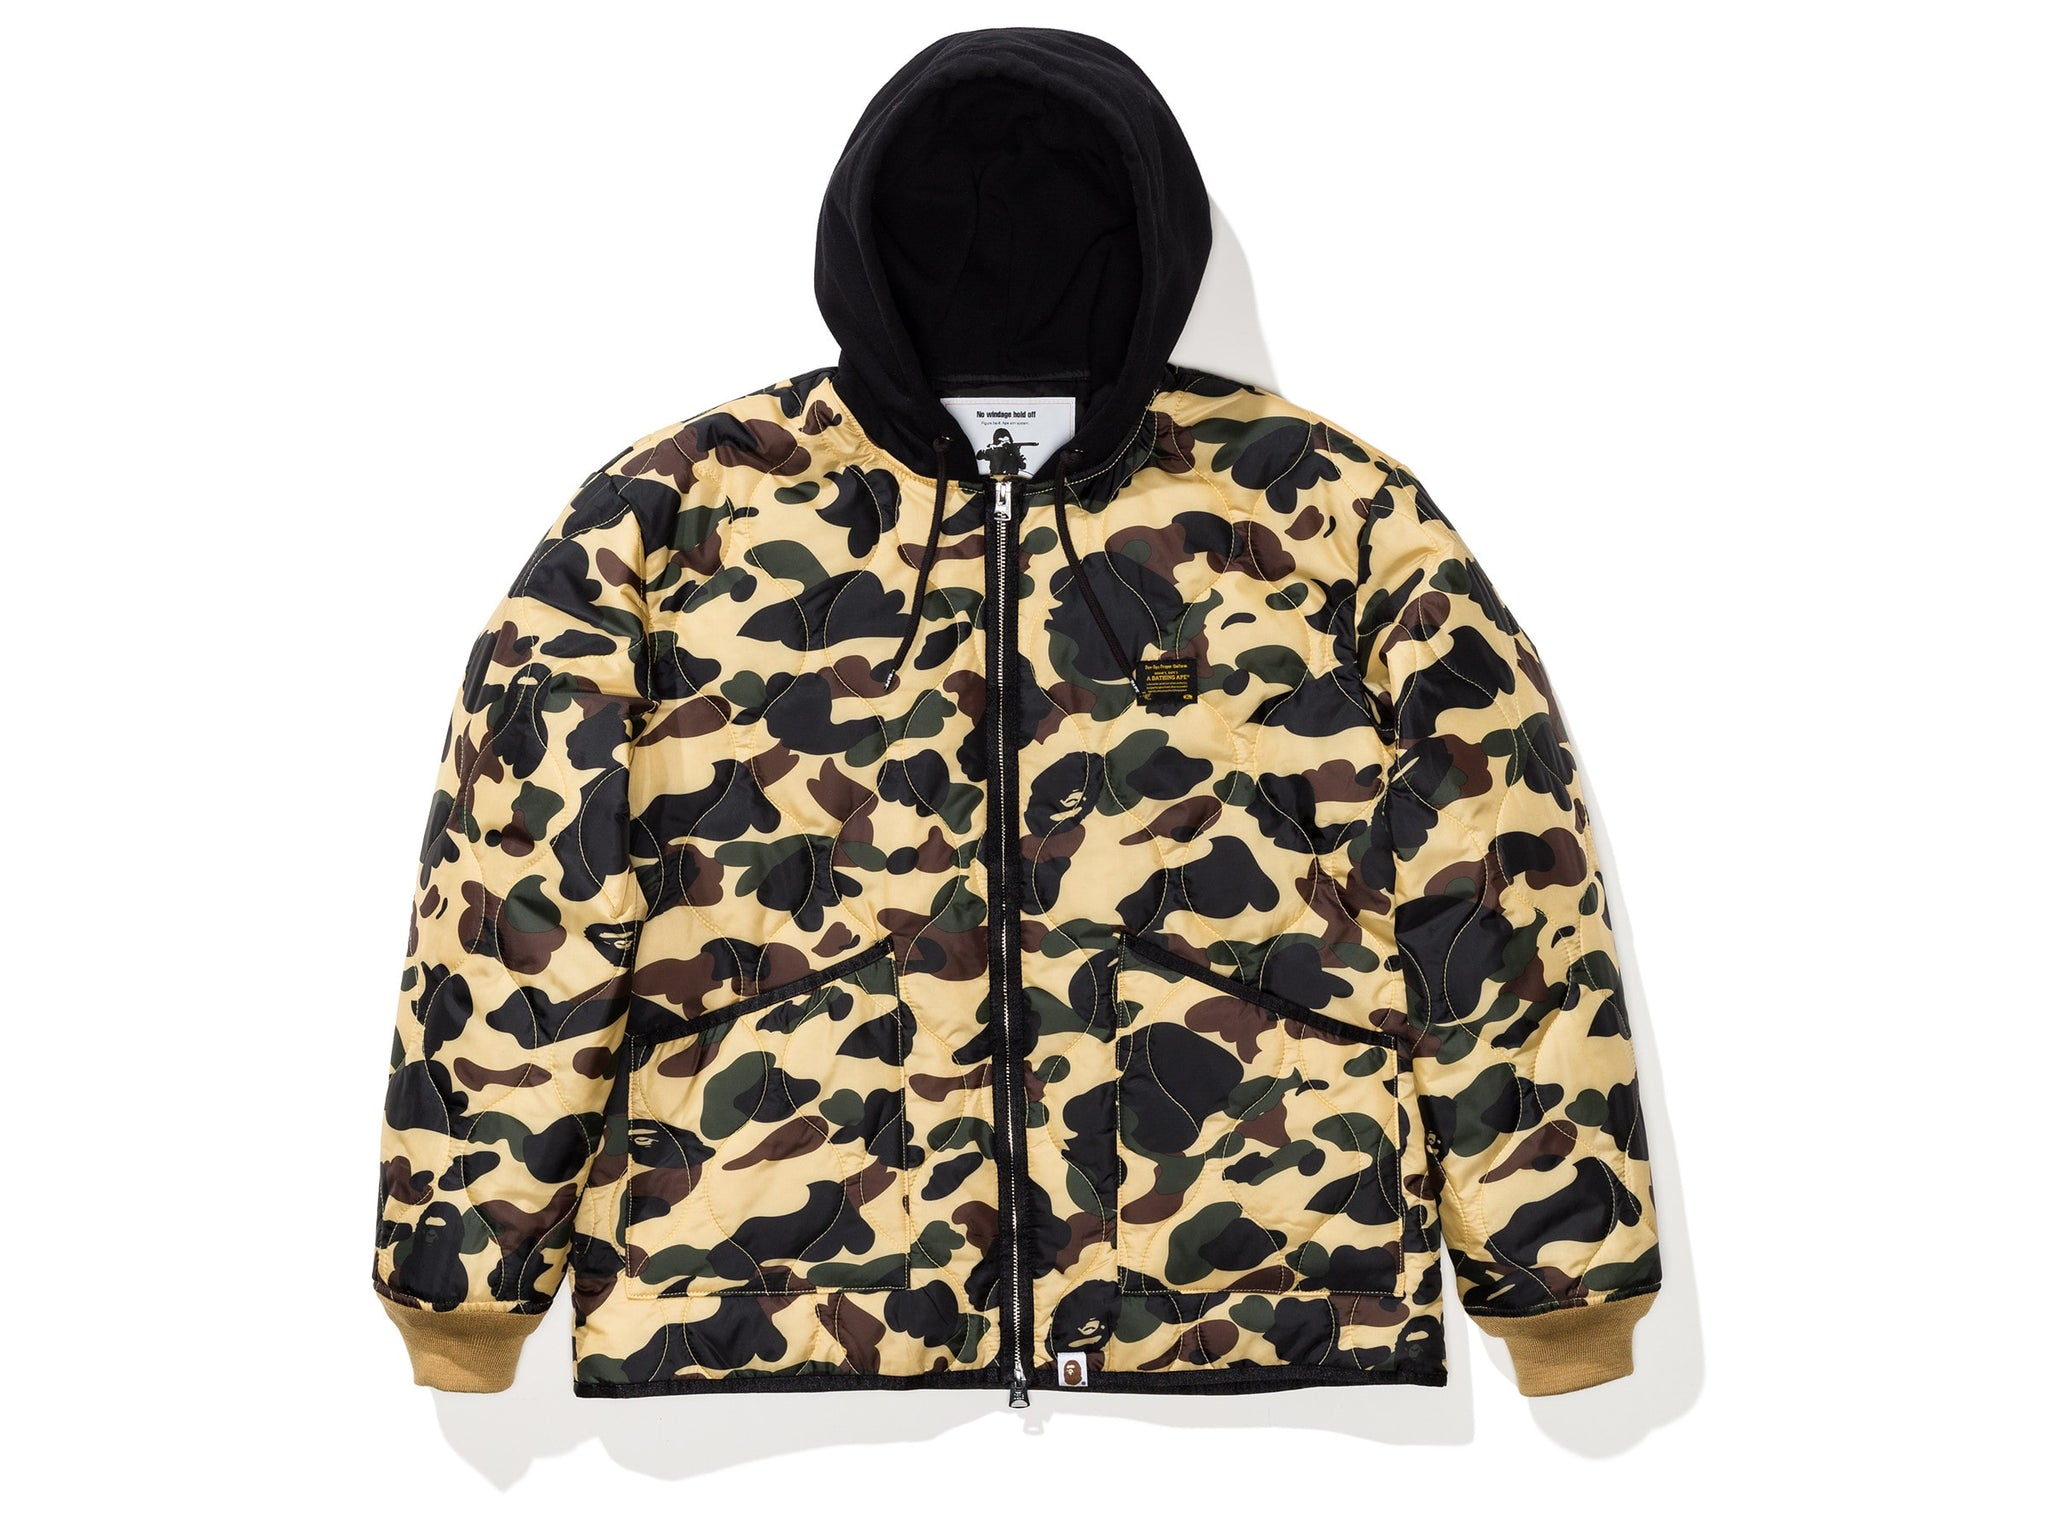 BAPE 1ST CAMO QUILTING HOODIE JACKET - YELLOW